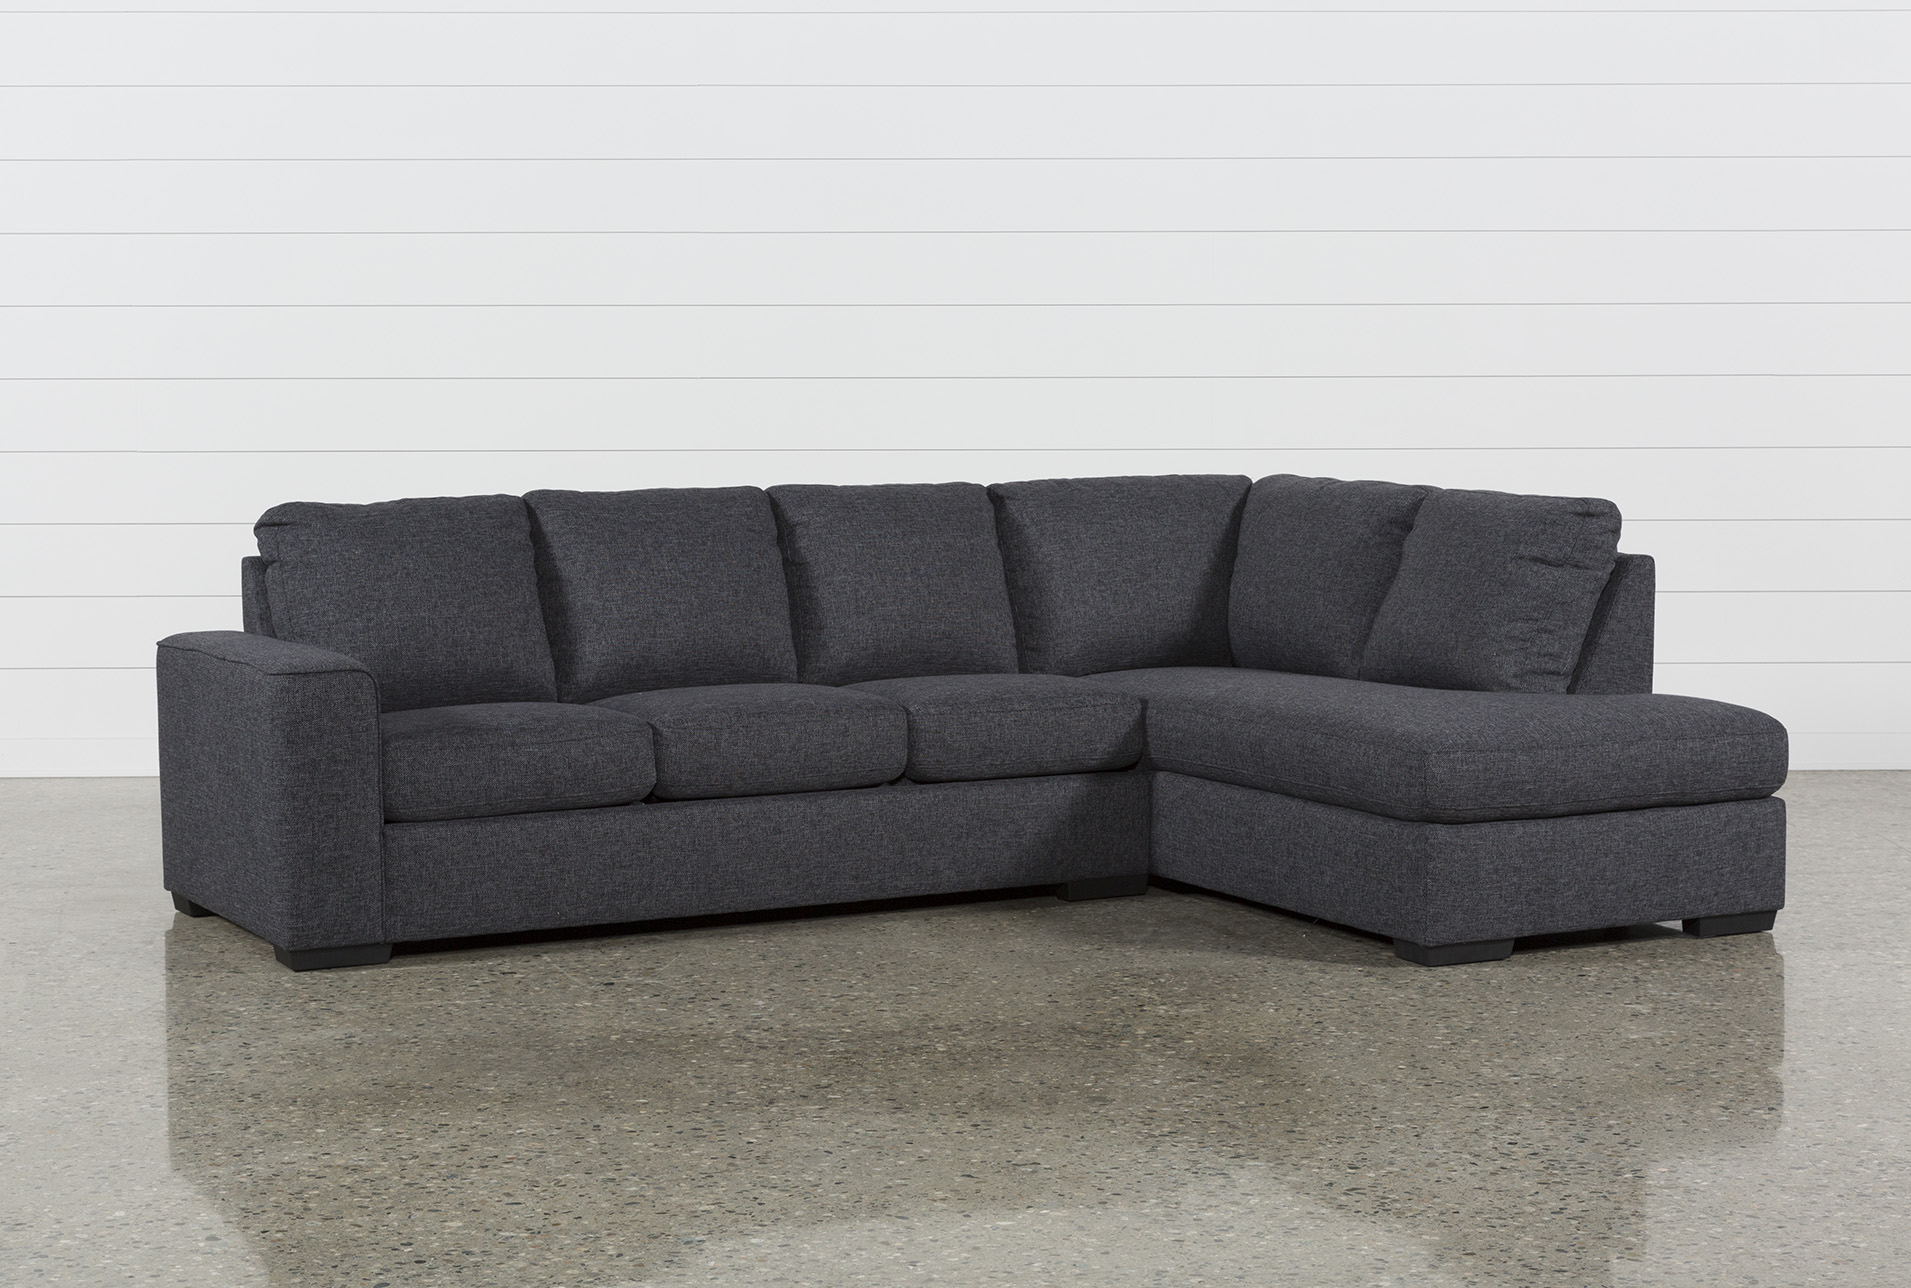 Wonderful Lucy Dark Grey 2 Piece Sectional W/Raf Chaise (Qty: 1) Has Been  Successfully Added To Your Cart.